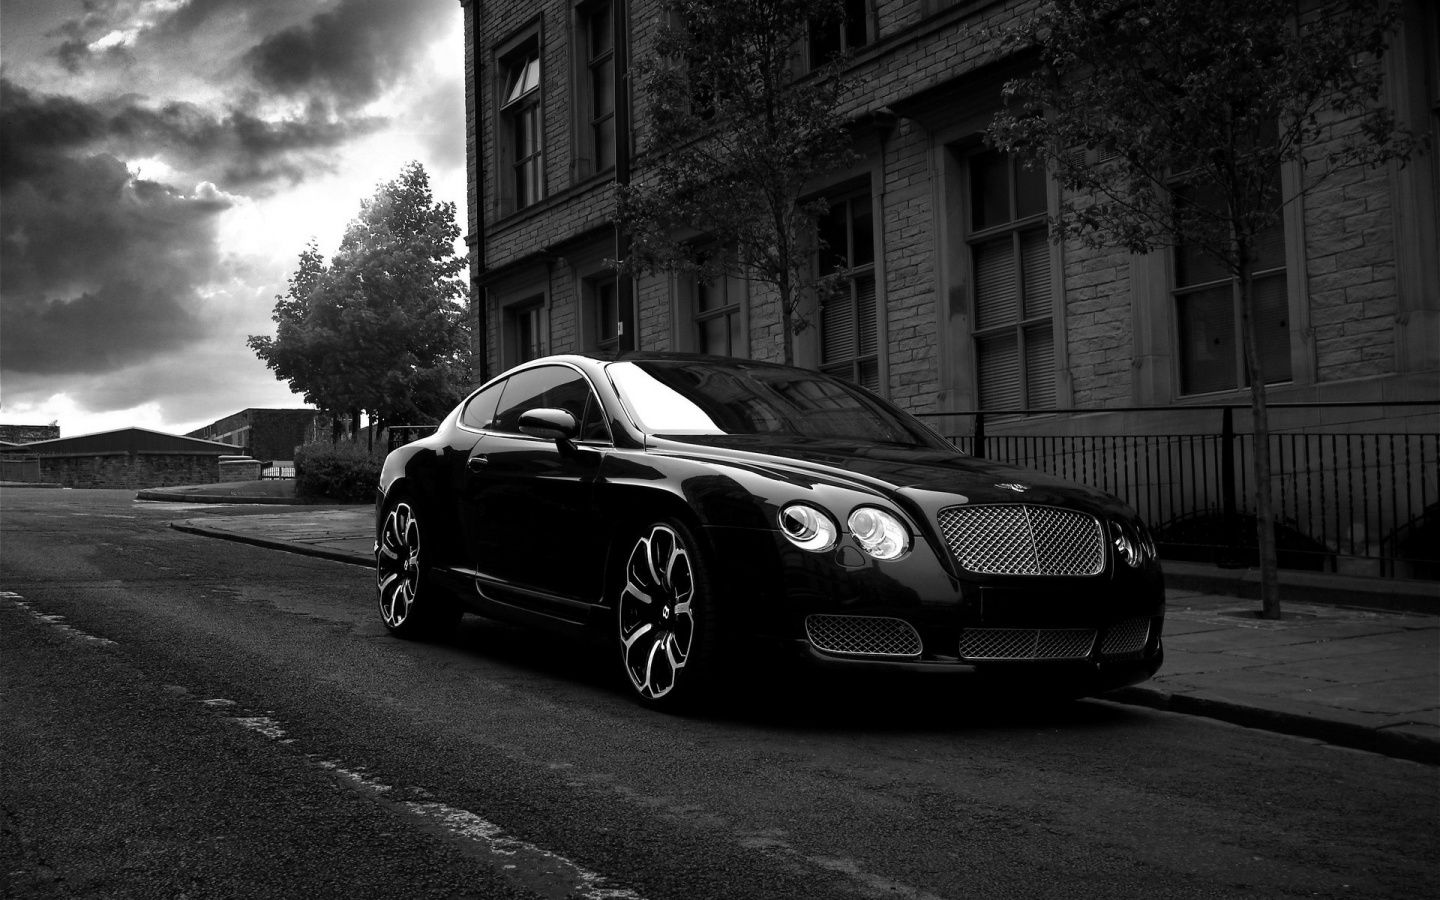 Bentley Wallpaper Bentley Auto Continental Bentley Continental Gt